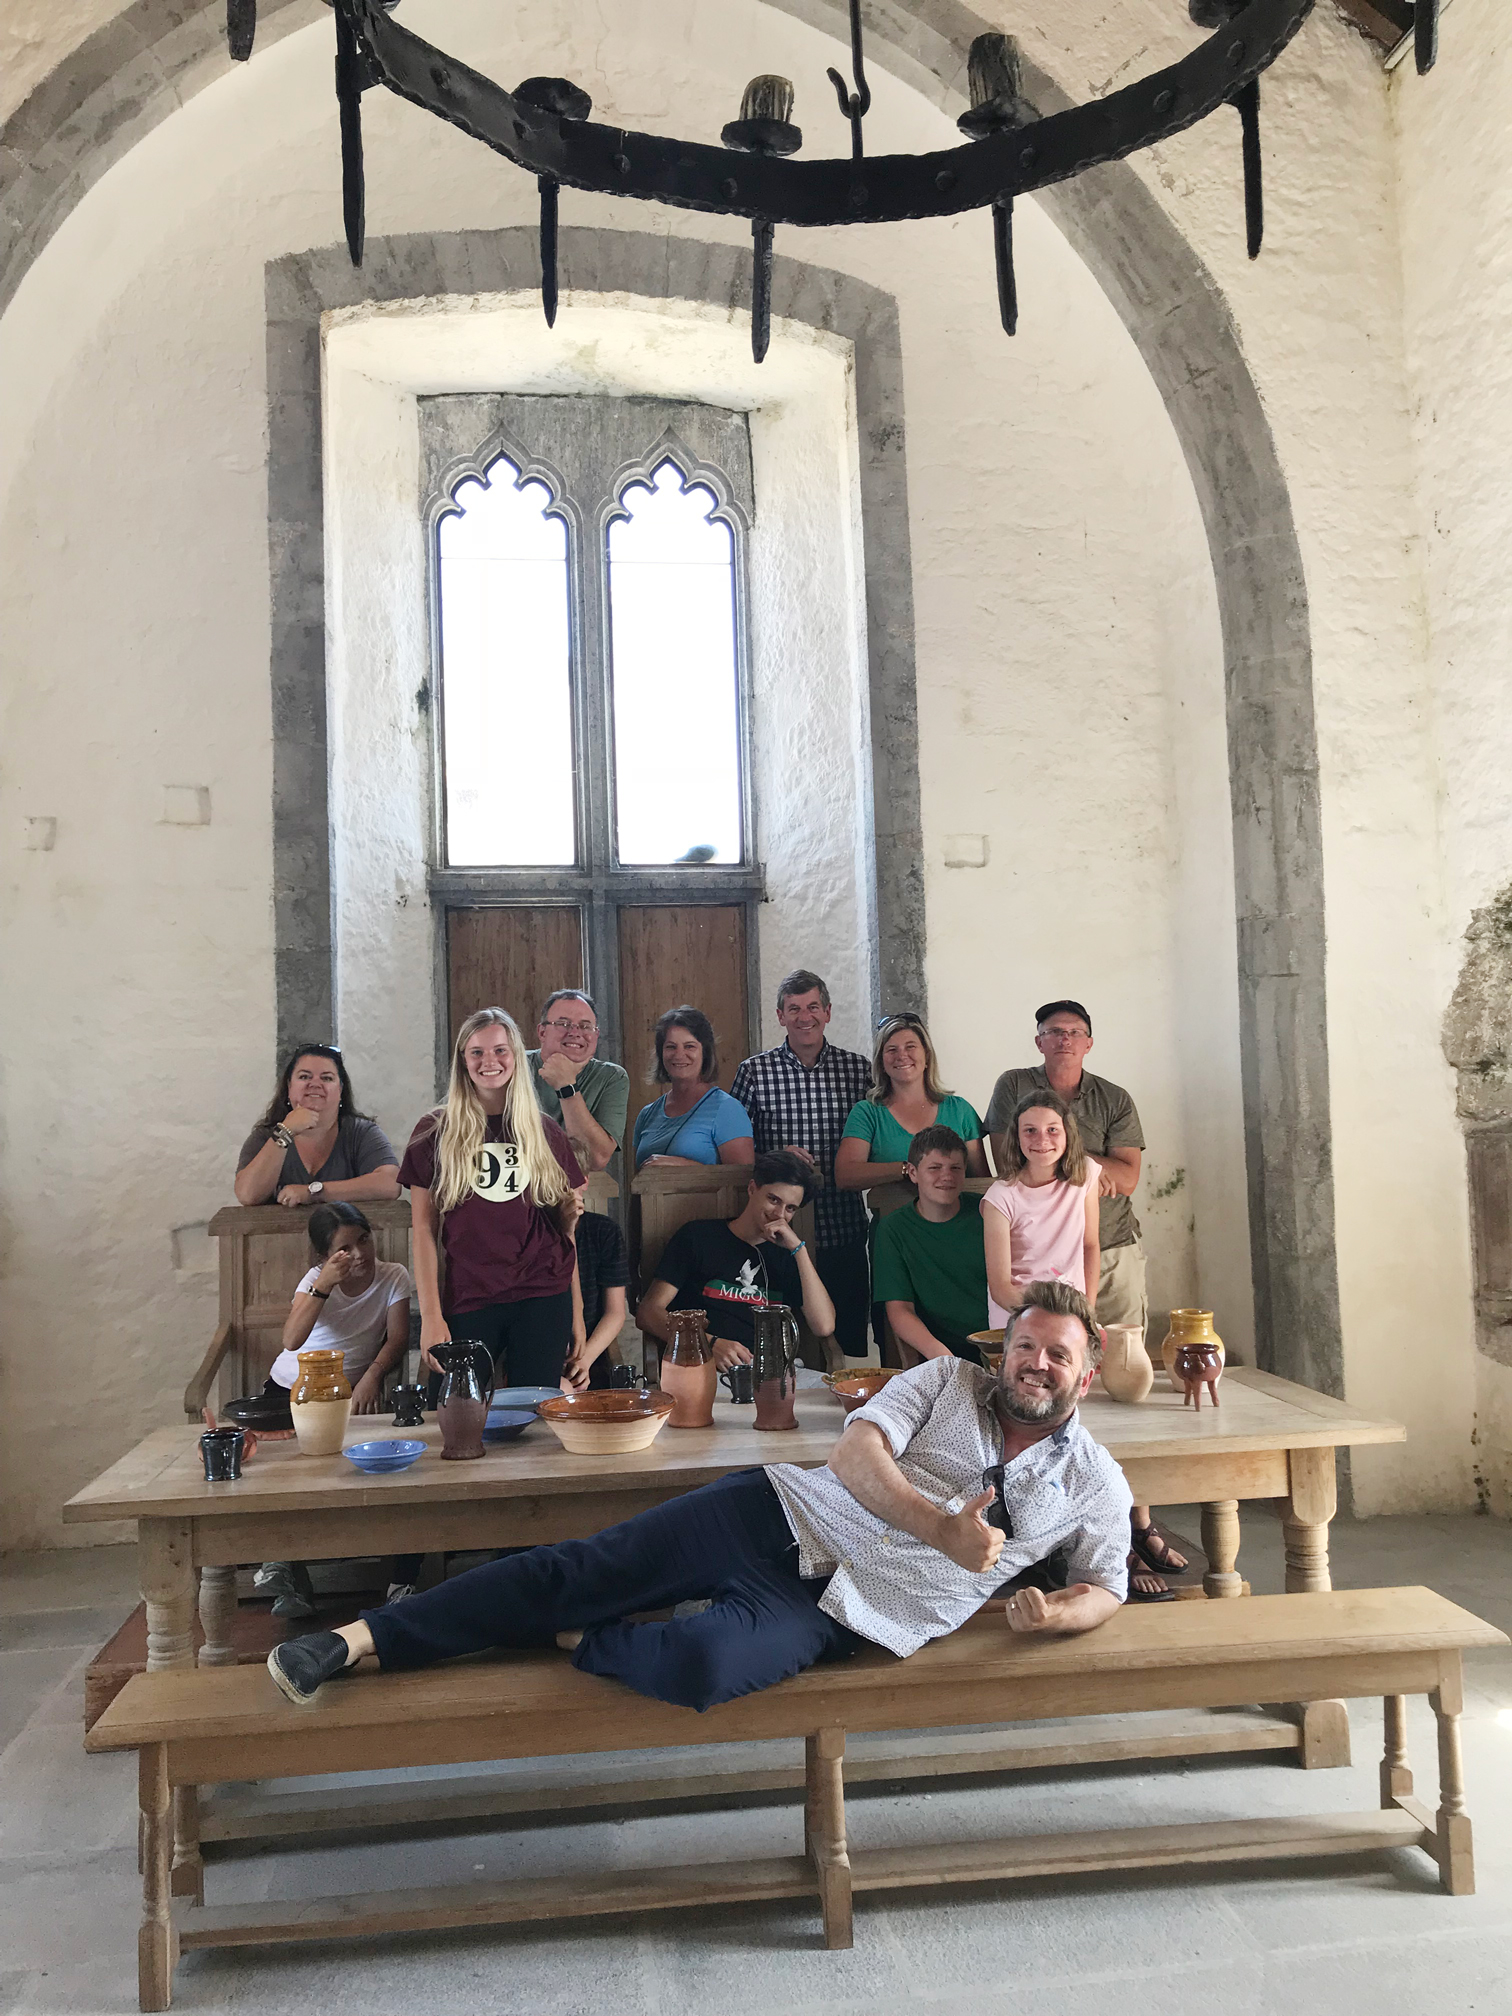 Chief guide Stephen McPhilemy and Essential Ireland tour group in the Great Hall of the Fitzgeralds in Newcastlewest in Limerick